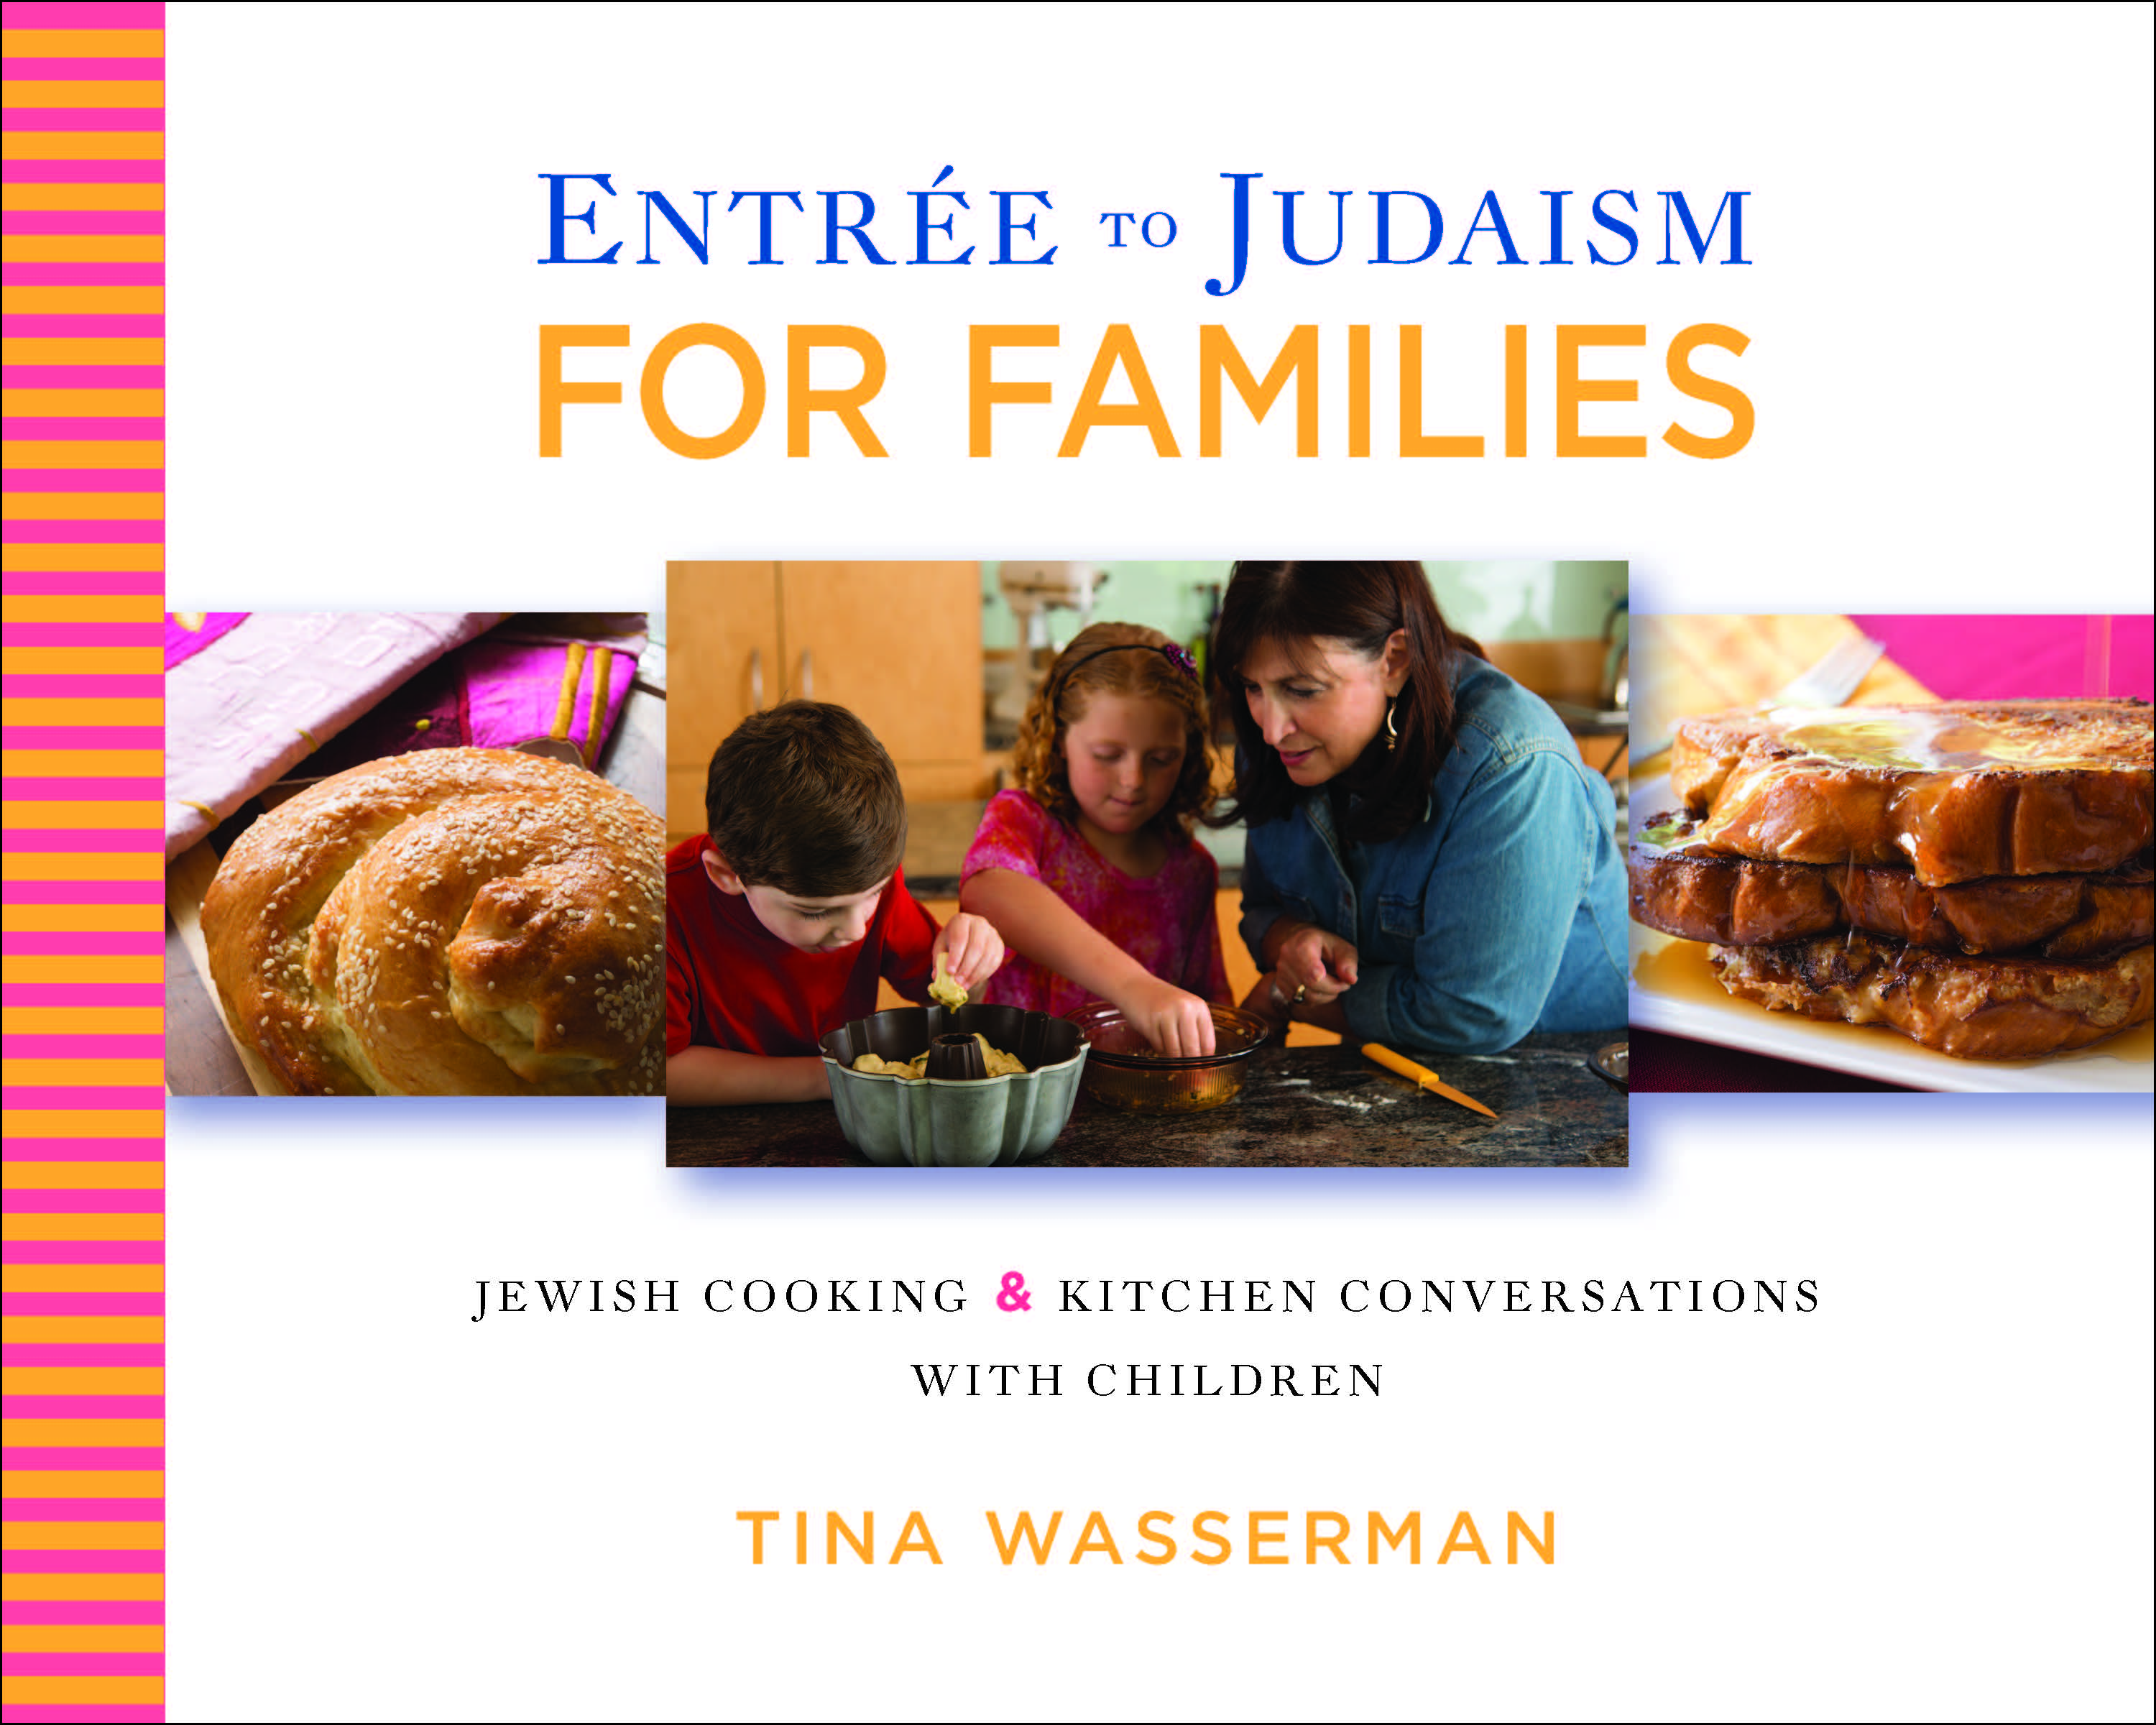 Tina's Entrée to Judaism for Families-Jewish Cooking and Kitchen Conversations with Children